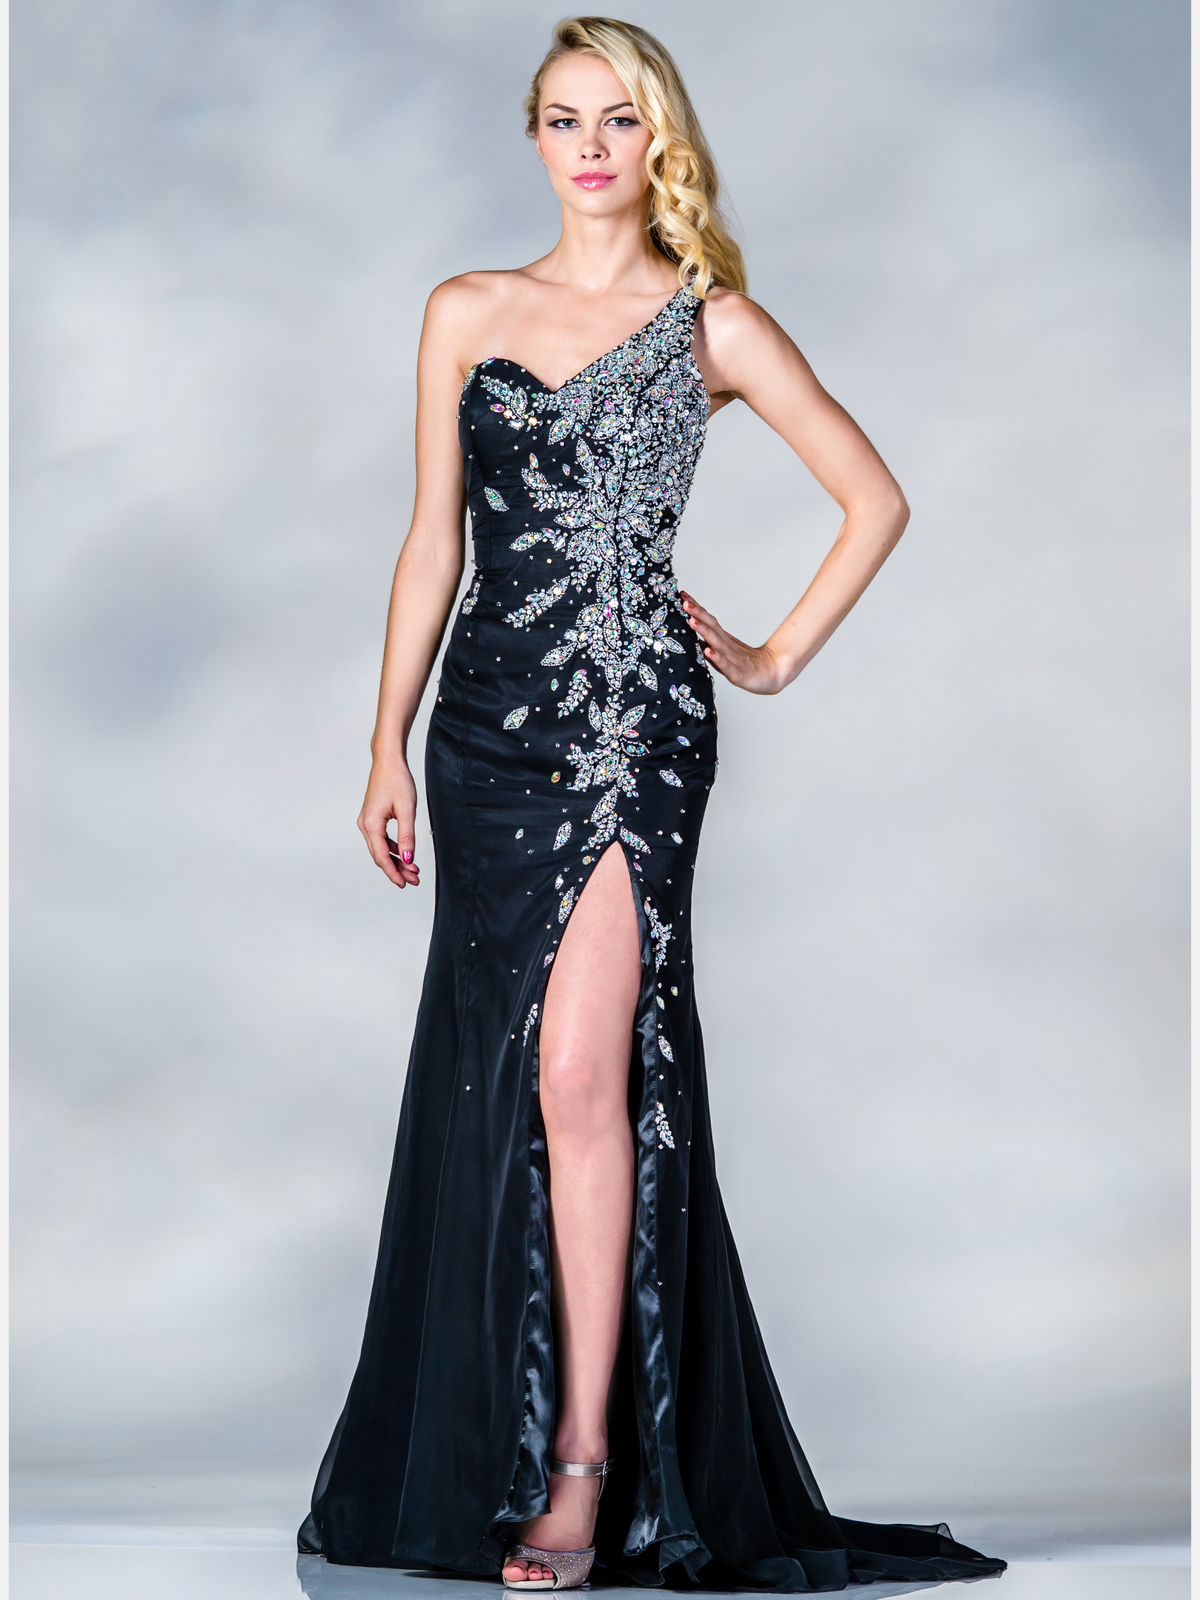 Floral Beaded One Shoulder Prom Dress | Sung Boutique L.A.One Shoulder Black Prom Dresses